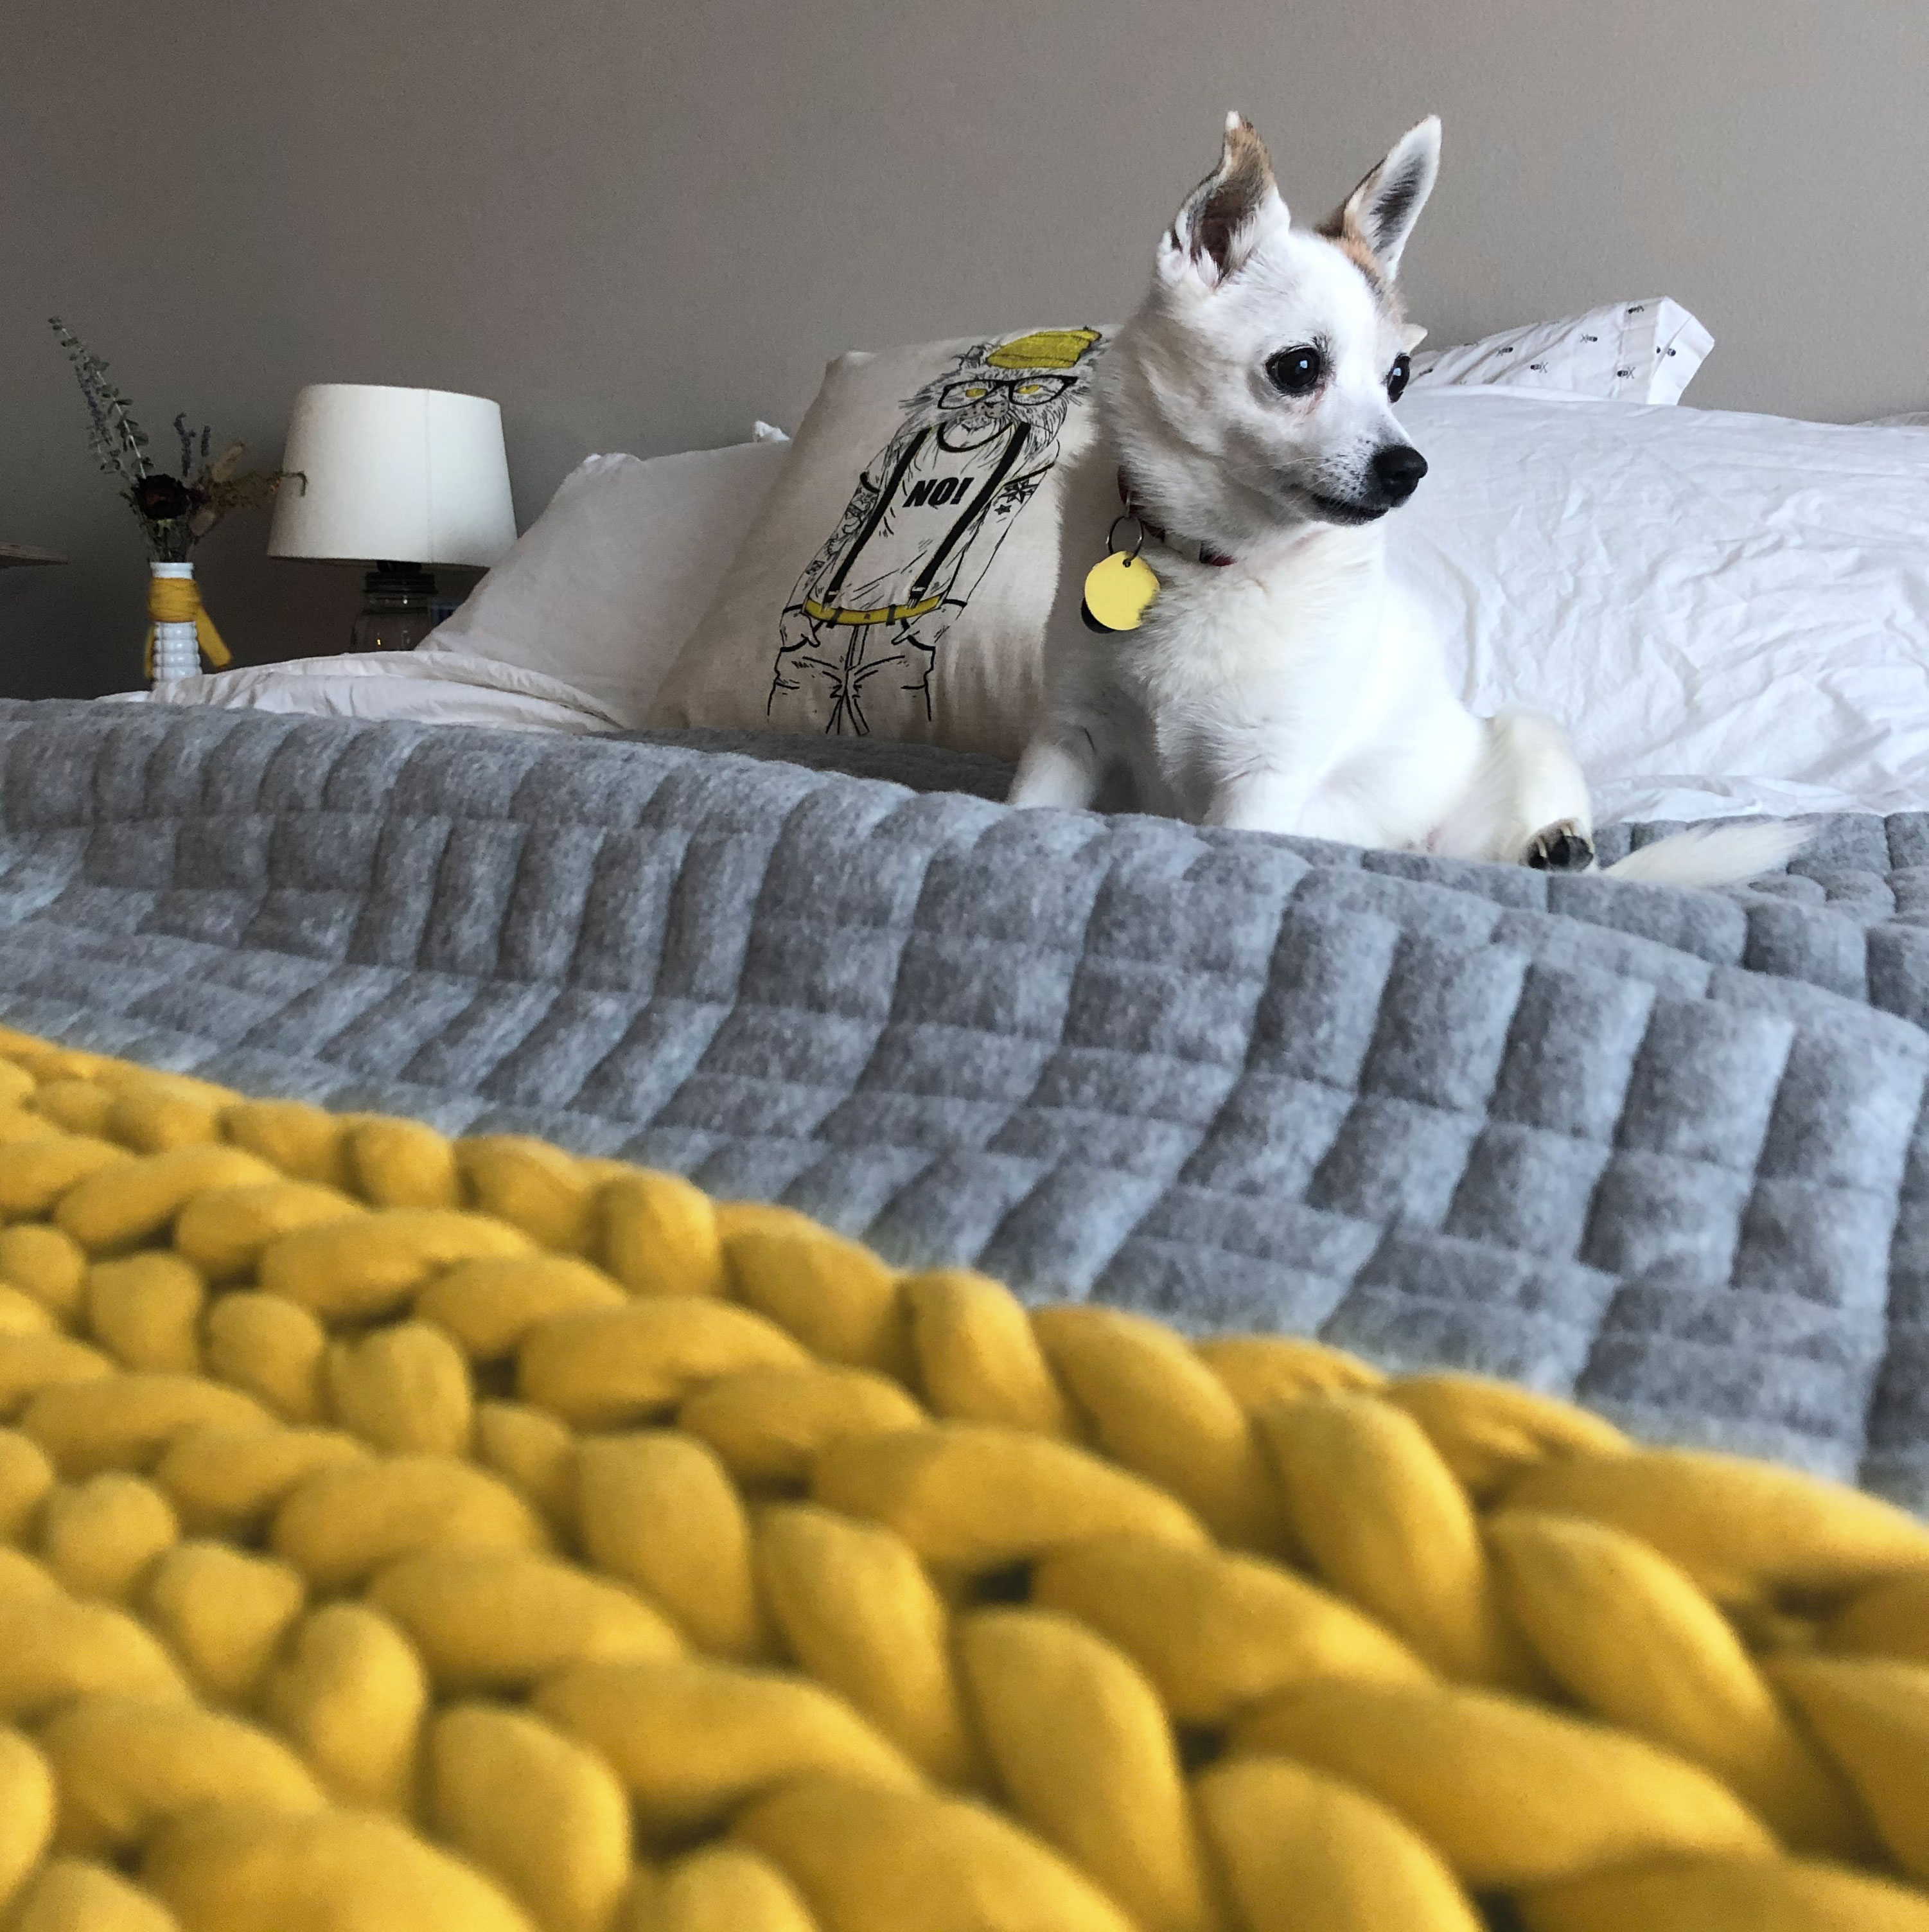 White dog sitting on a bed with grey and yellow bedding.